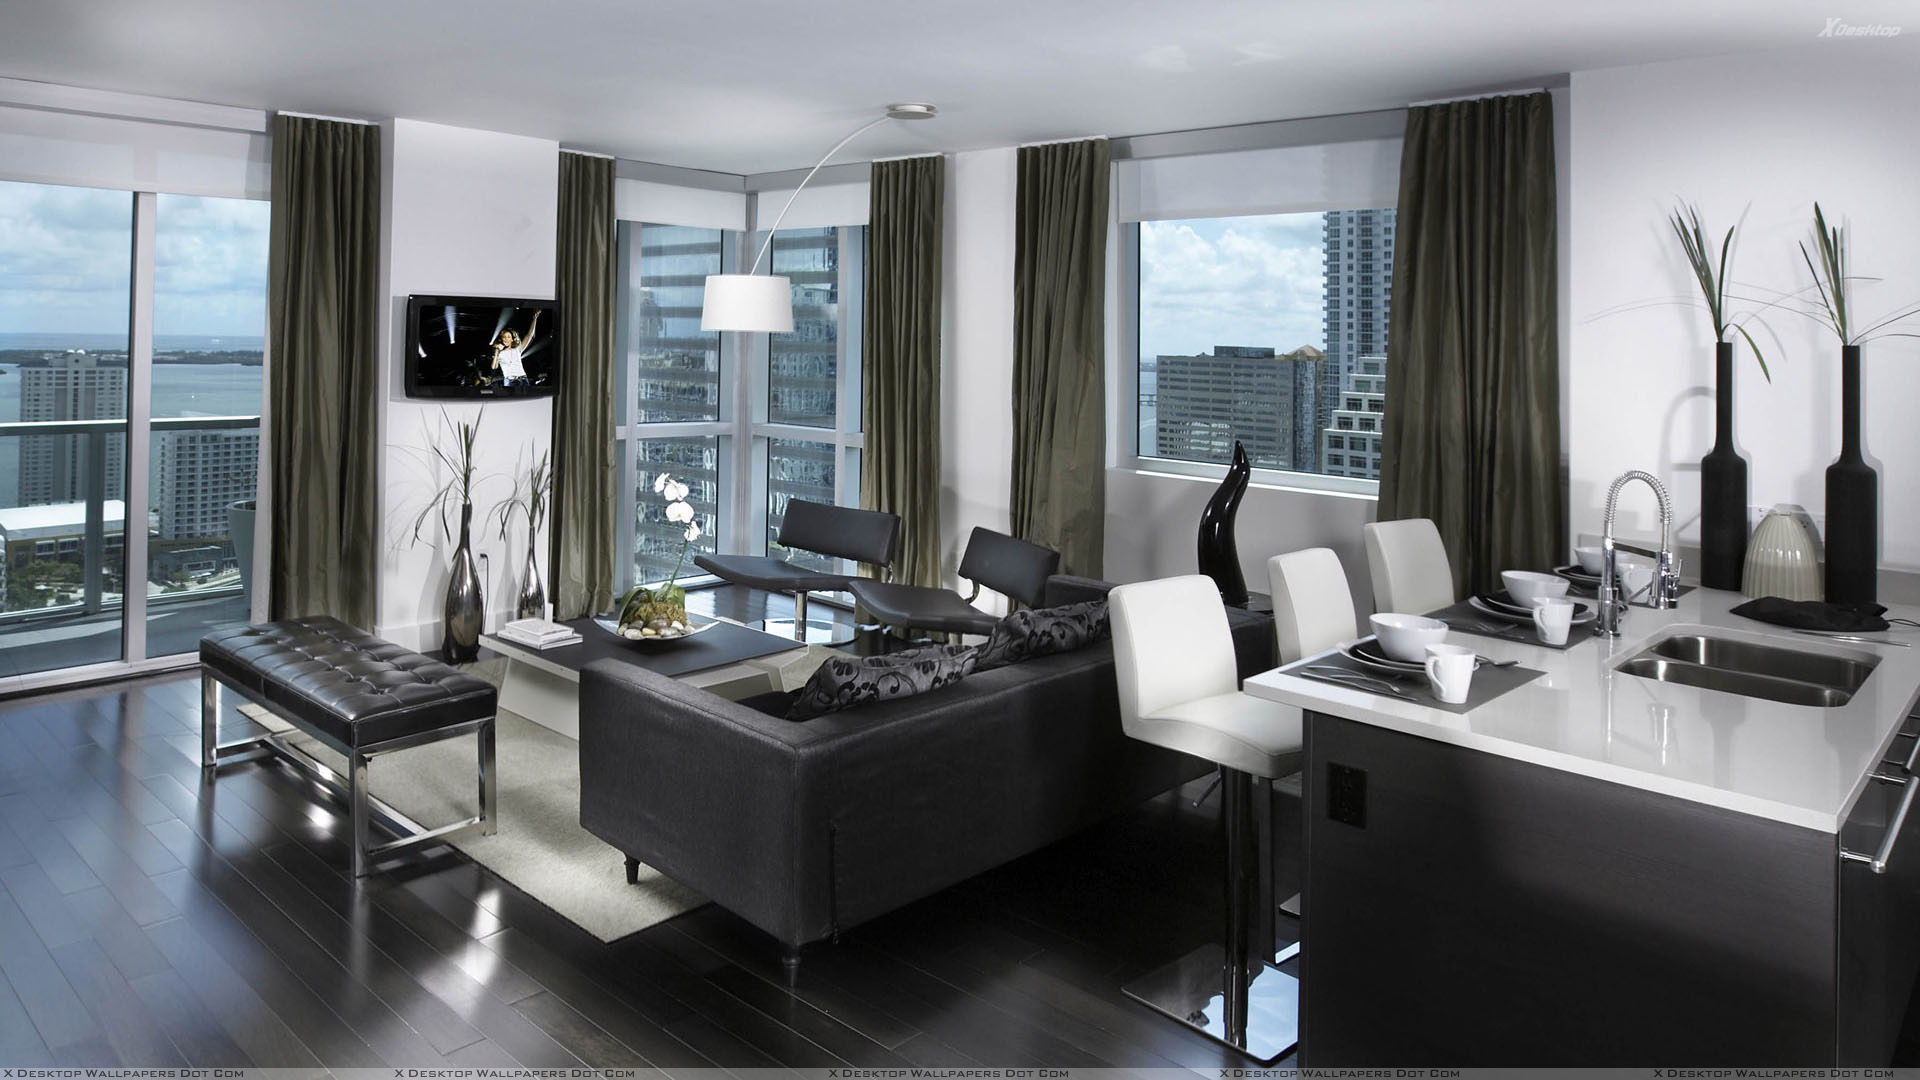 Black and white nice apartment interior wallpaper White grey interior design